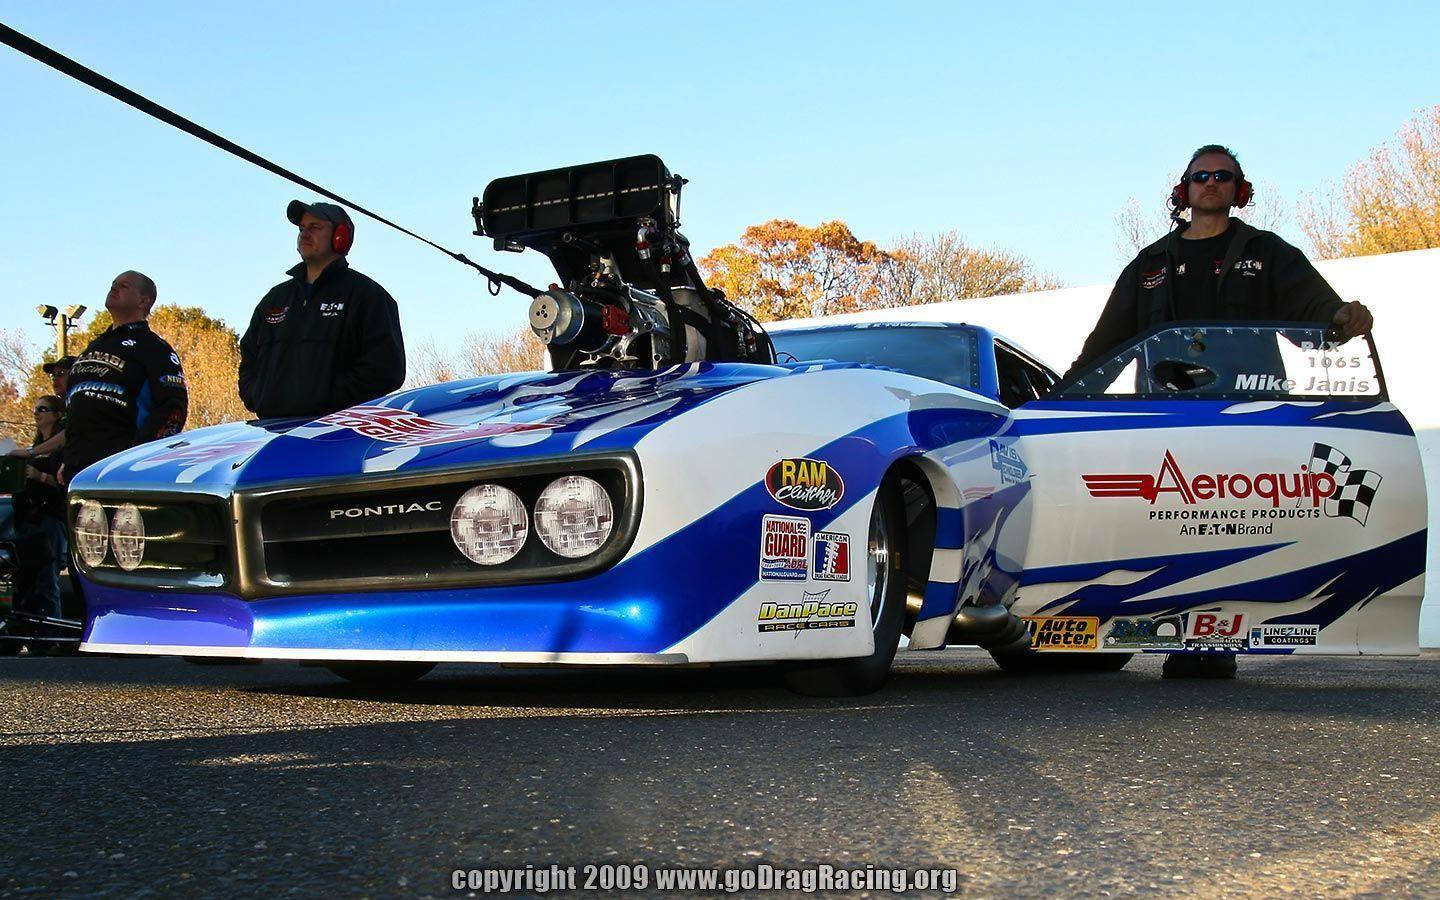 Mike Janis Firebird Pro Mod Computer Wallpapers, Desktop ...